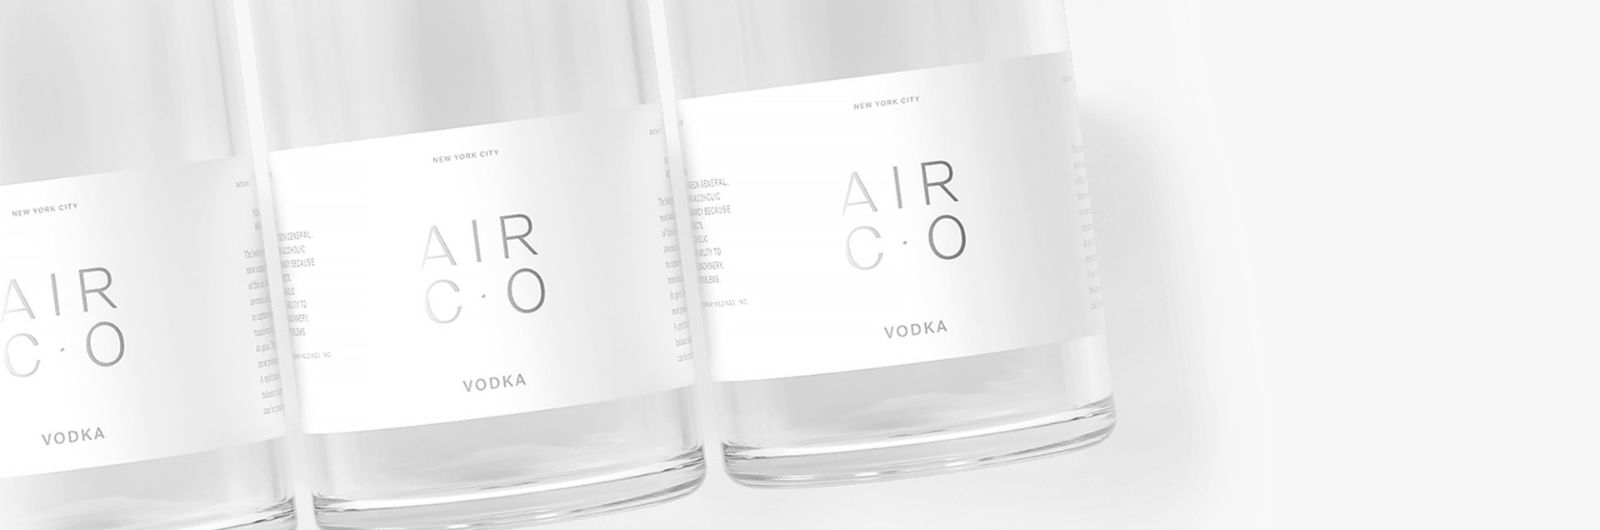 Carbon-Negative Vodka Made out of Thin Air